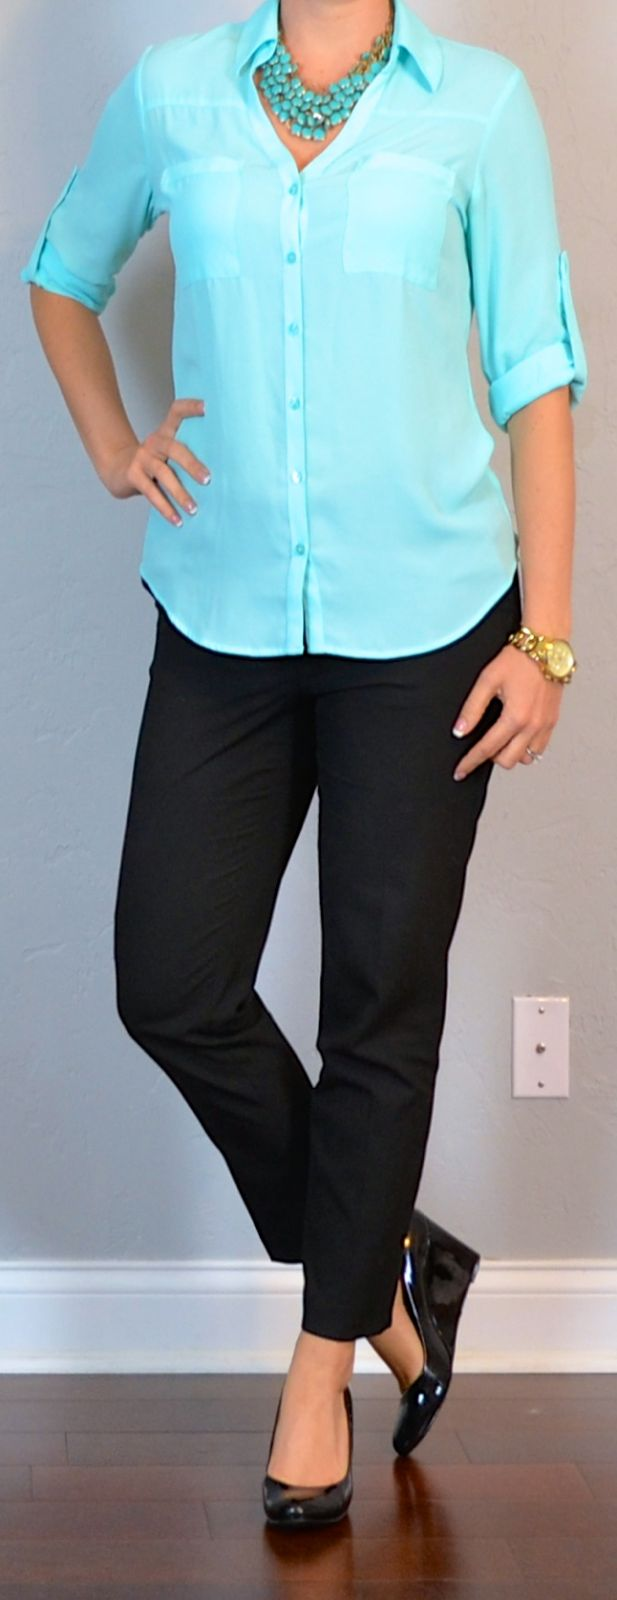 Outfit Posts: outfit post: teal blouse, black cropped pants, black wedges